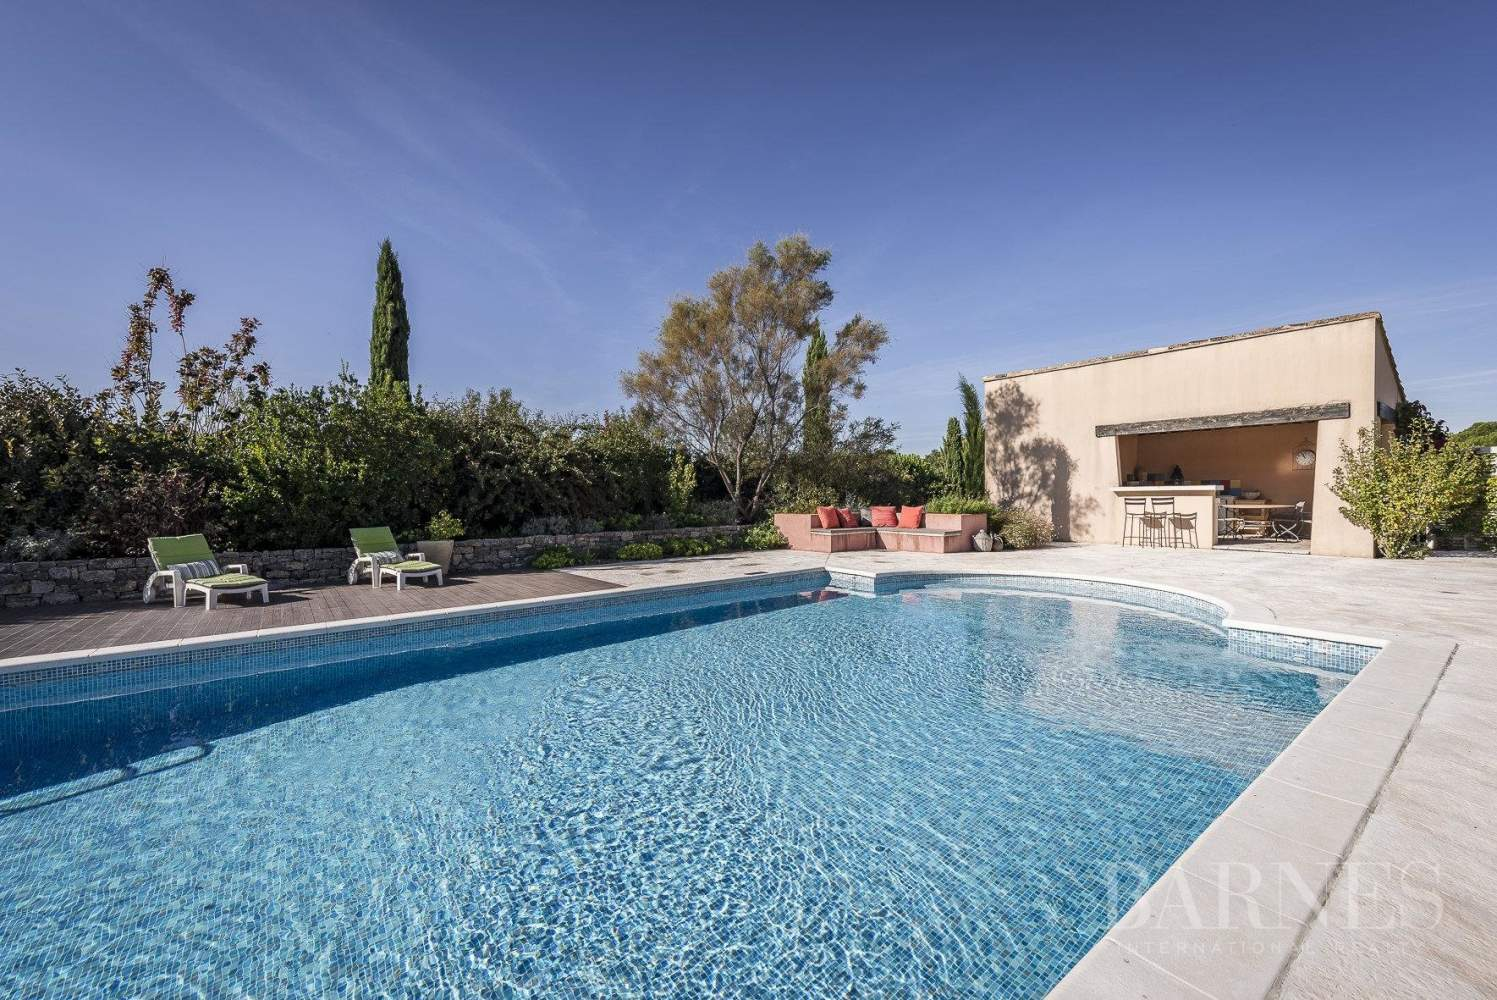 House for sale - East Aix-en-Provence - swimming pool picture 1